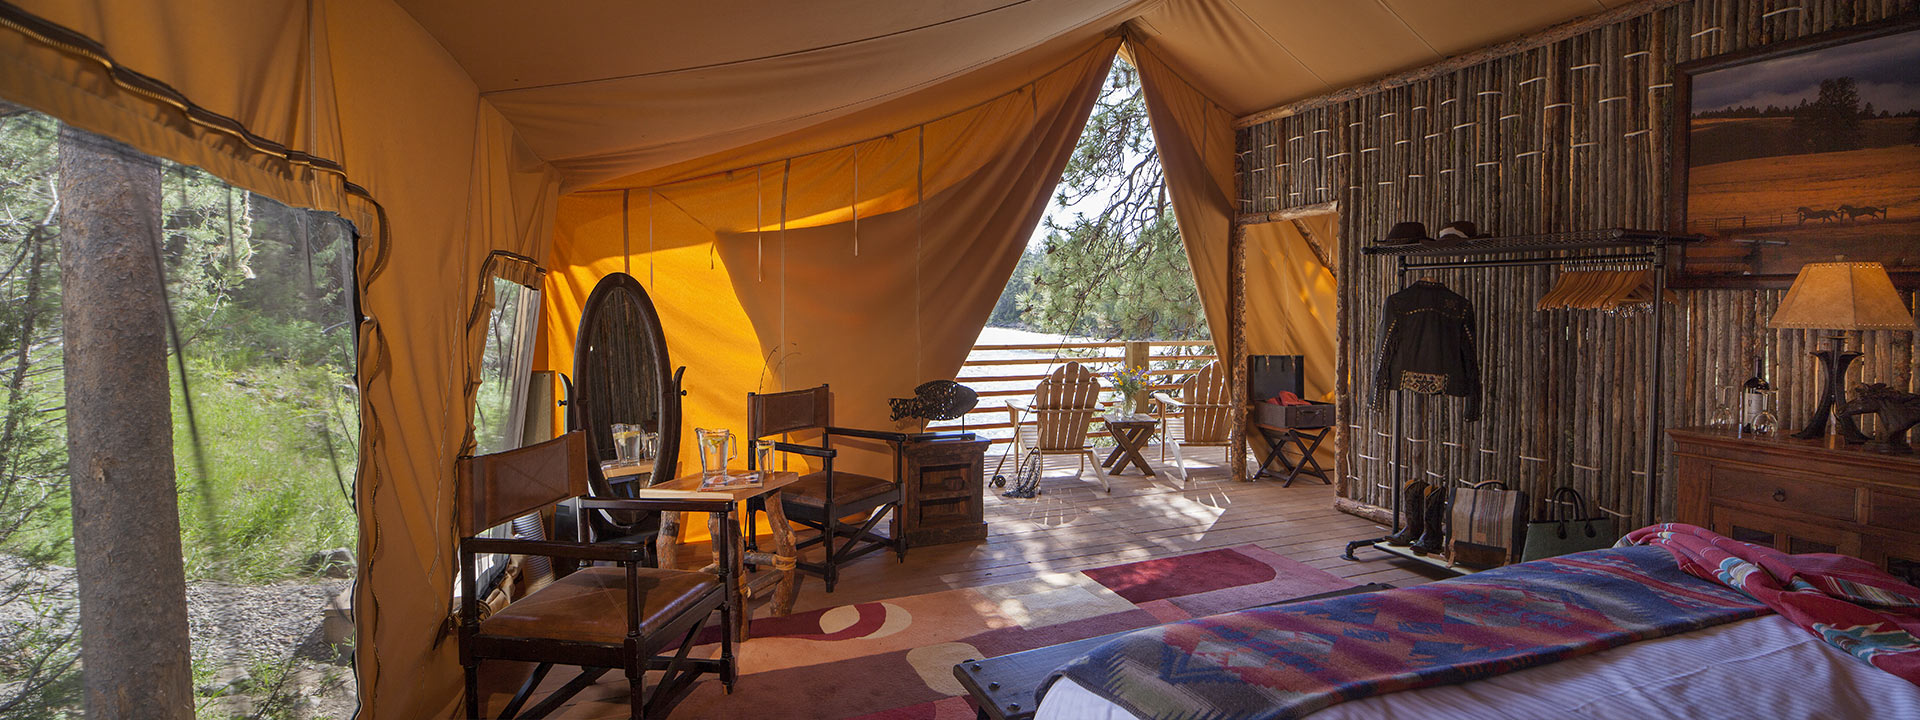 River C& - Tent Interior & Glamping in Luxury Tents - River Camp - The Resort at Paws Up